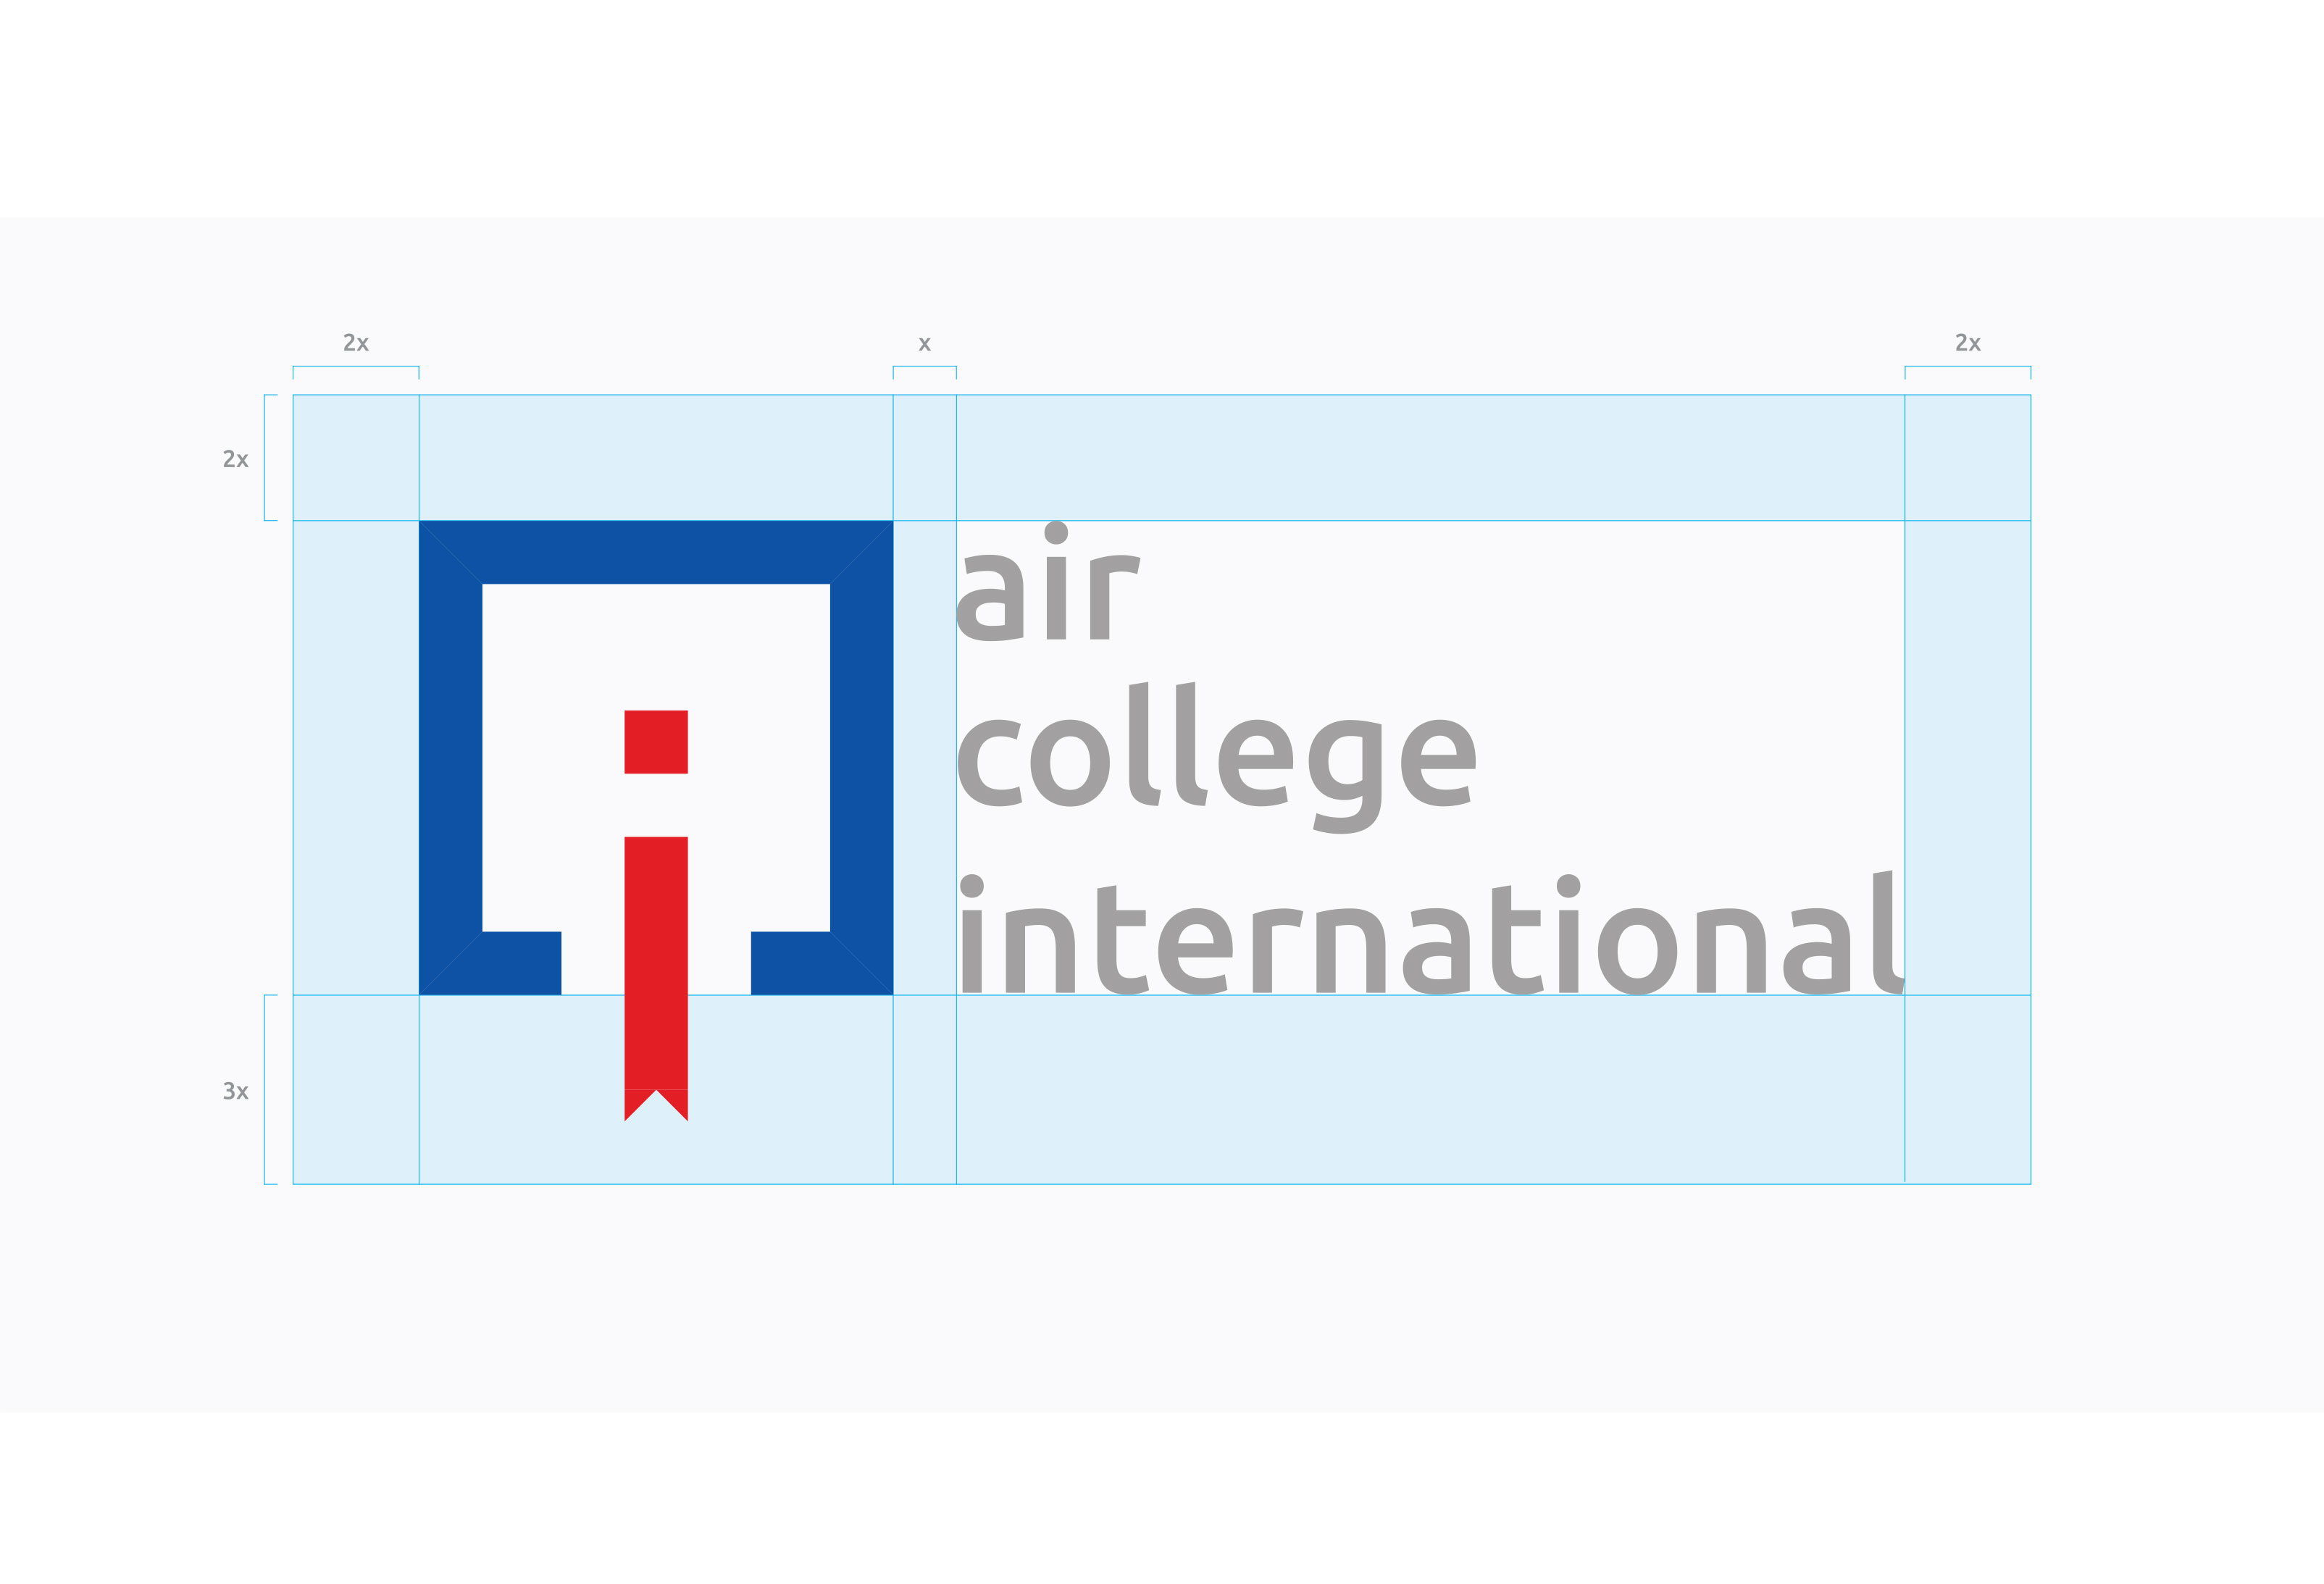 Air College International - Brand combination mark